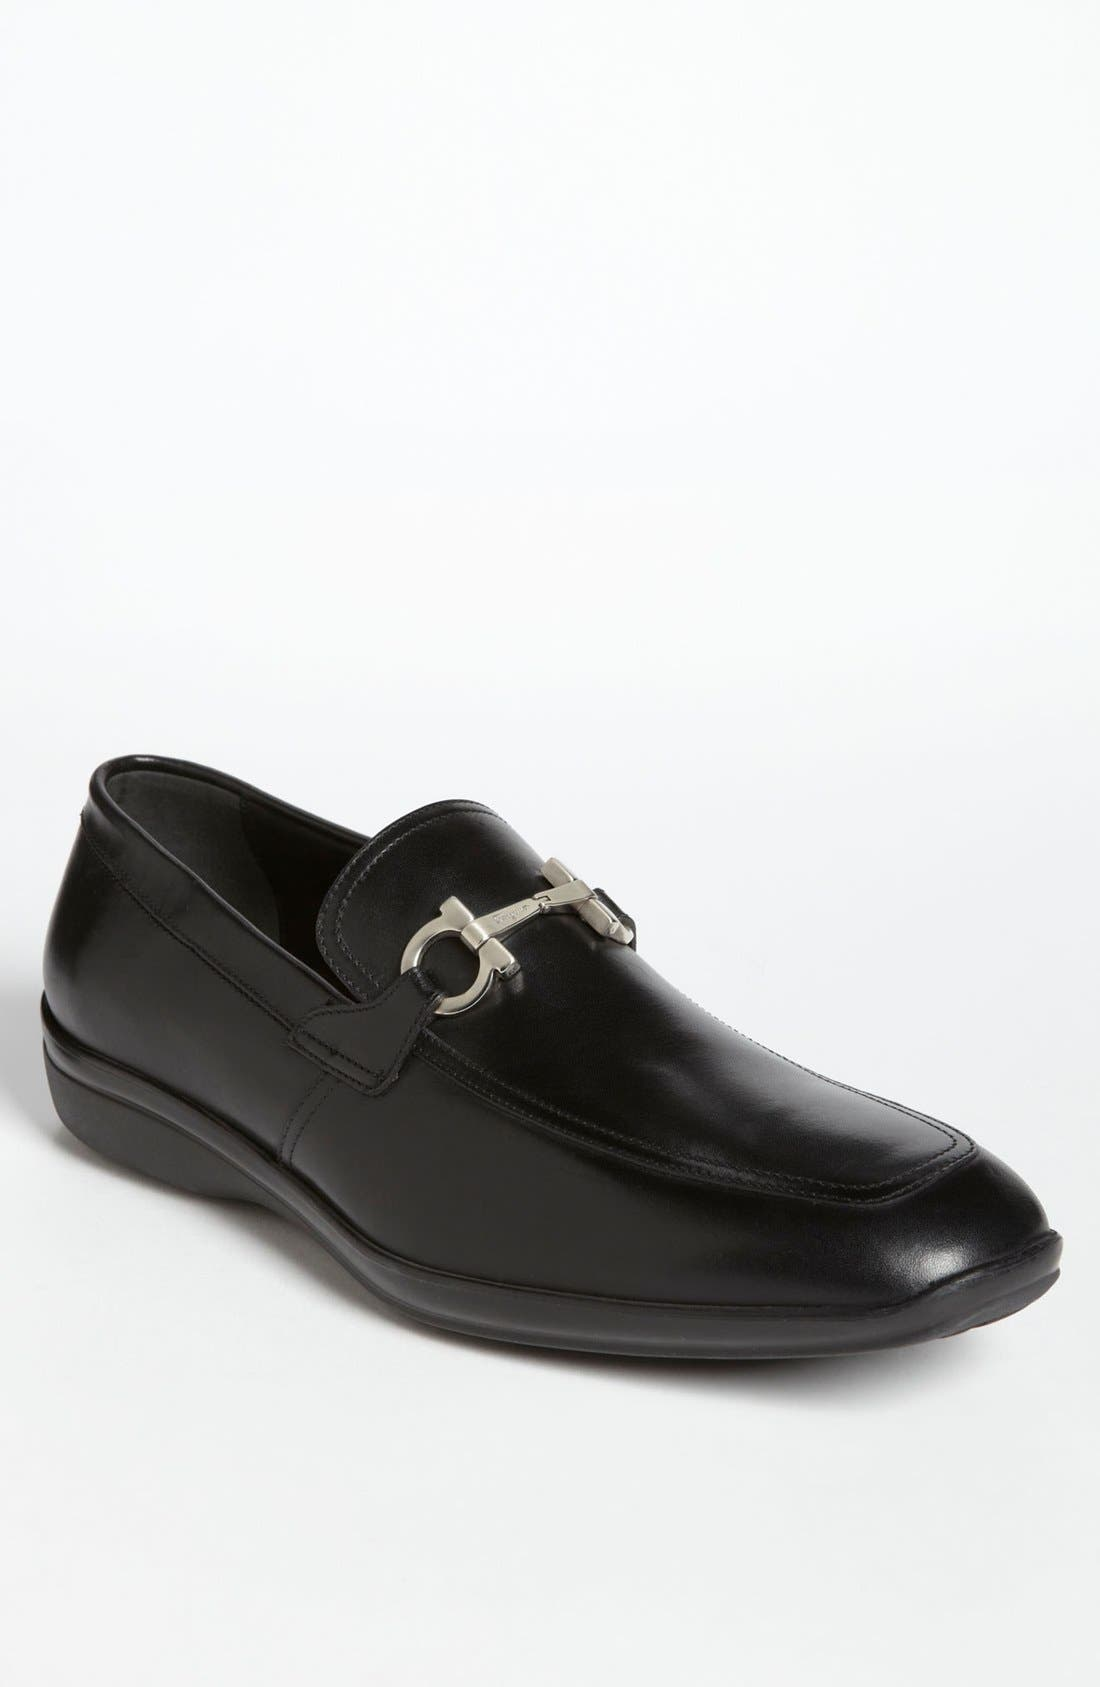 Alternate Image 1 Selected - Salvatore Ferragamo 'Simply' Bit Loafer